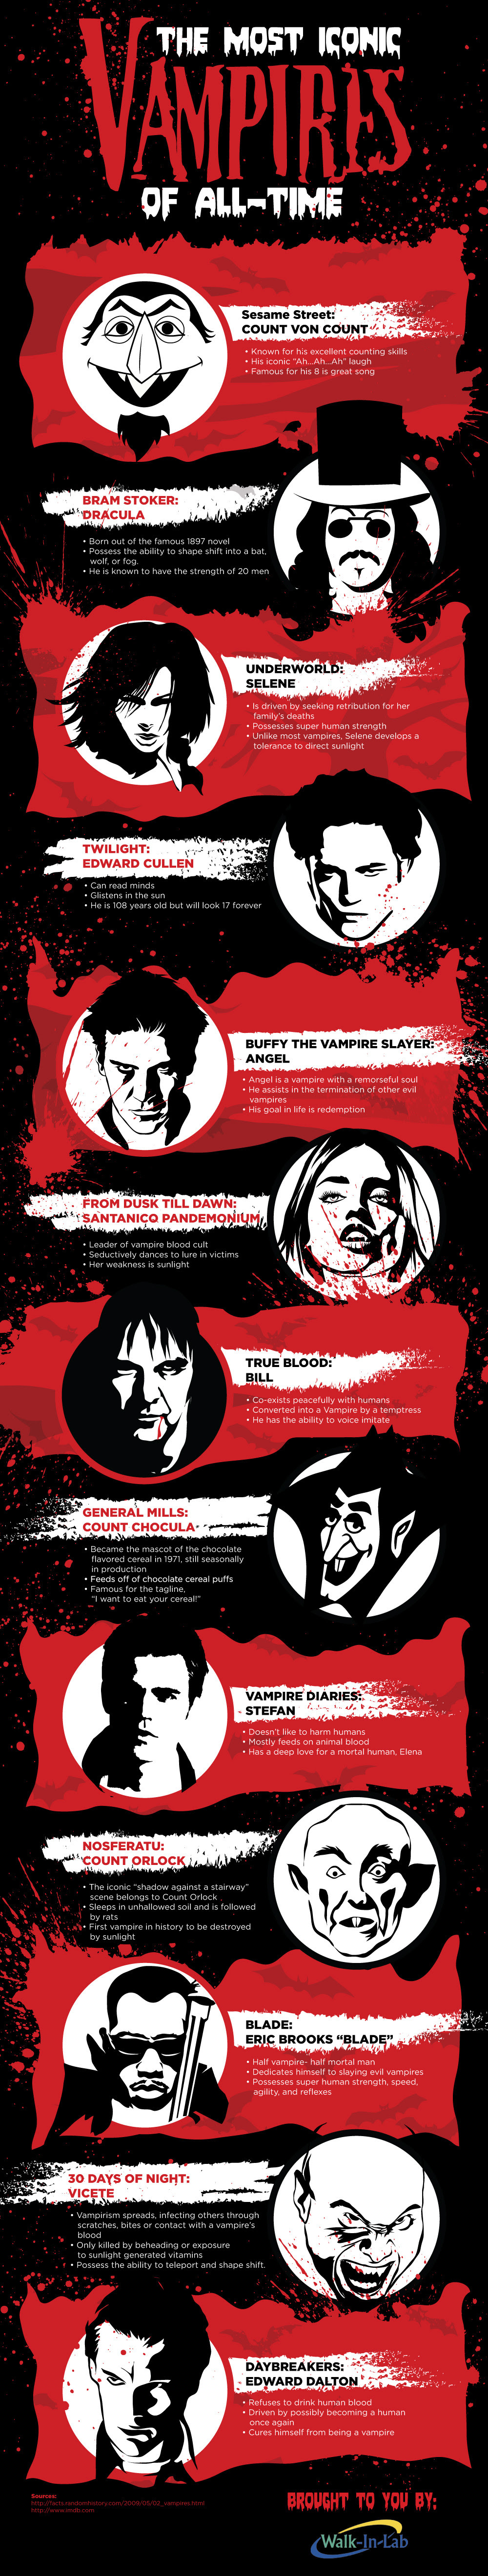 Infographic: The Most Iconic Vampire of All-Time